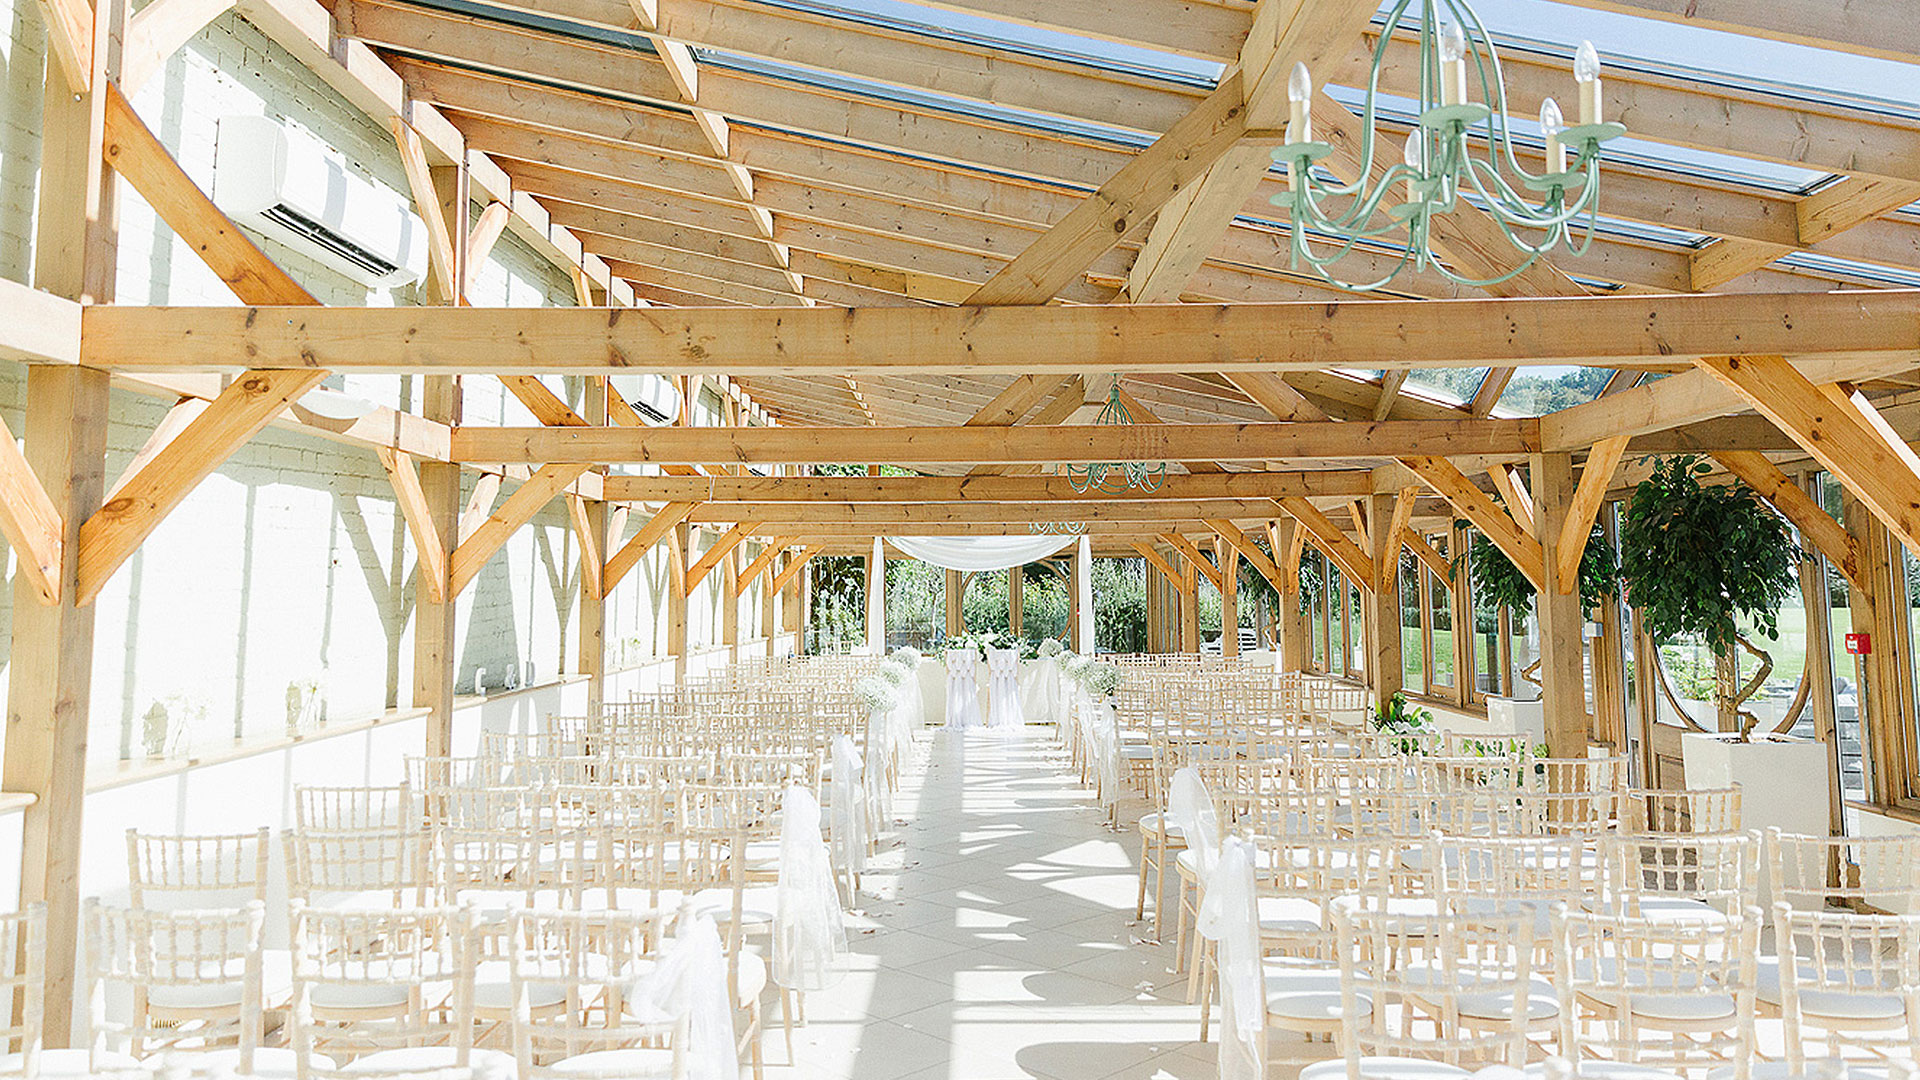 Rows of white wooden chairs line the Orangery ready for a beautiful and unique wedding ceremony